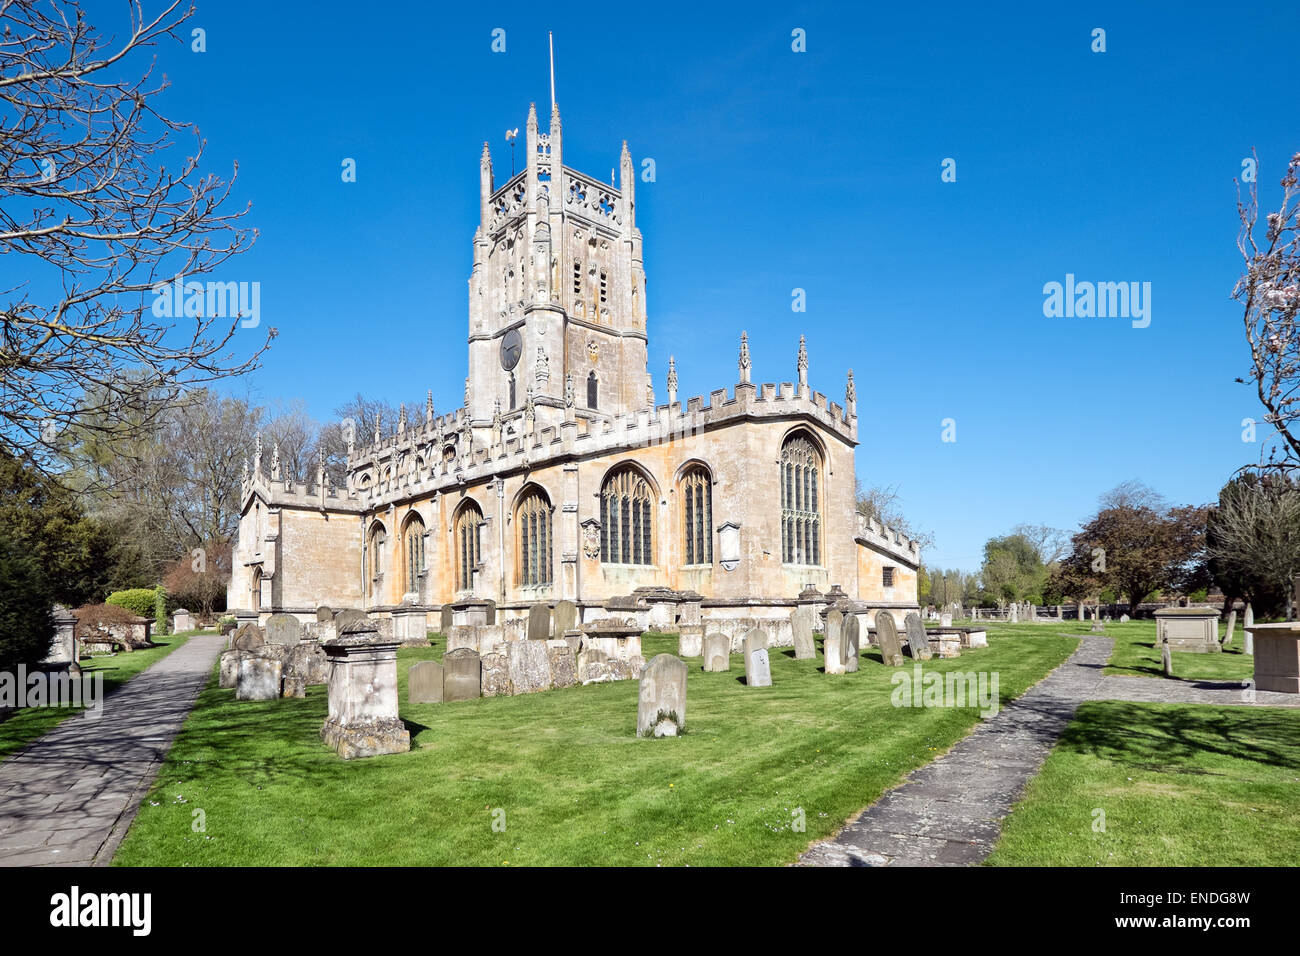 St Mary's Church & graveyard in the village of Fairford, Gloucestershire on a sunny day - Stock Image